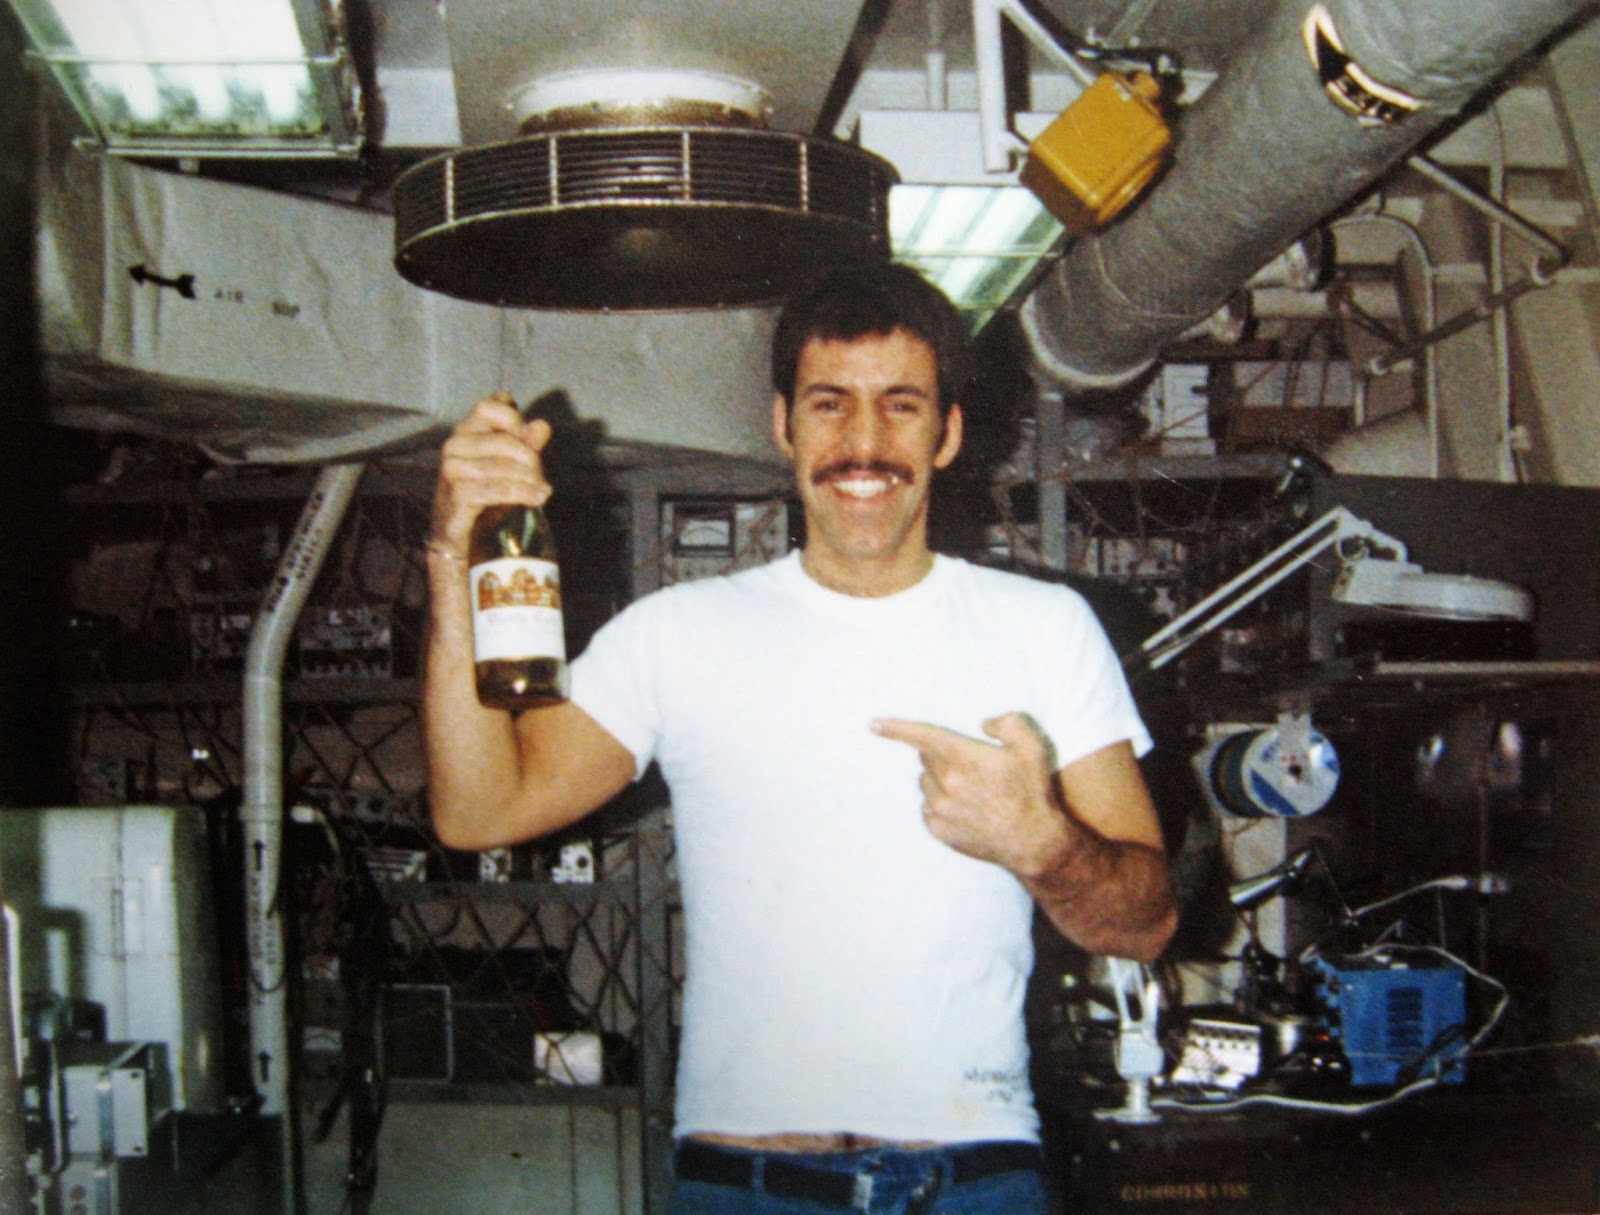 Tommy Mondello aboard Nimitz in shop 670 cal lab with wine bottle & dirt from Jim Morrison'd grave 1983